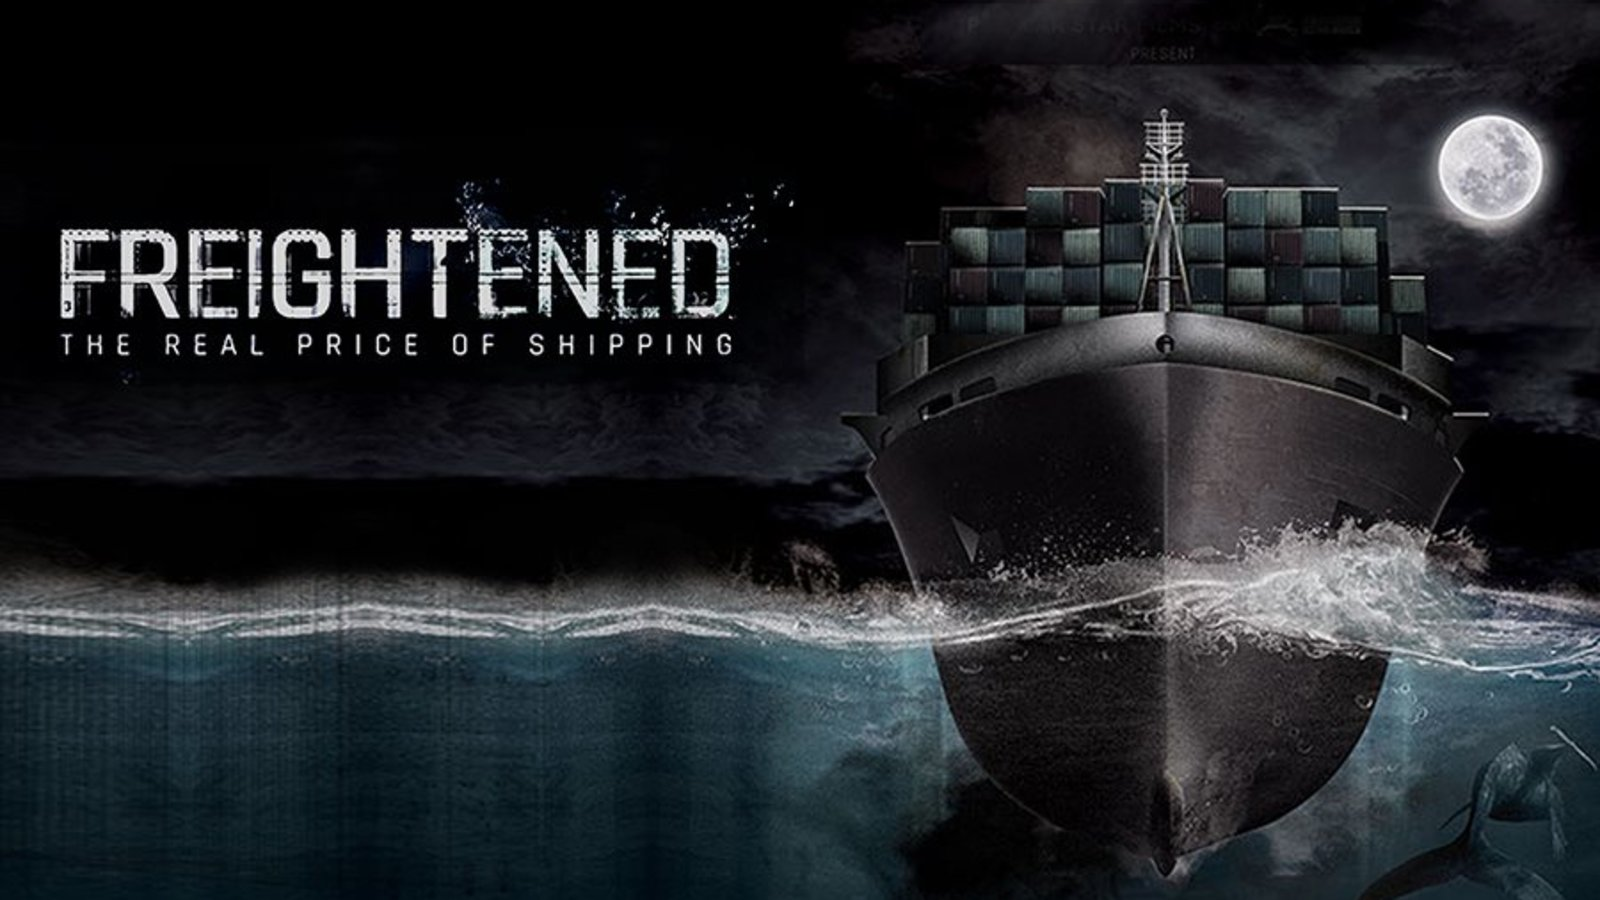 Freightened - The Real Price of Shipping